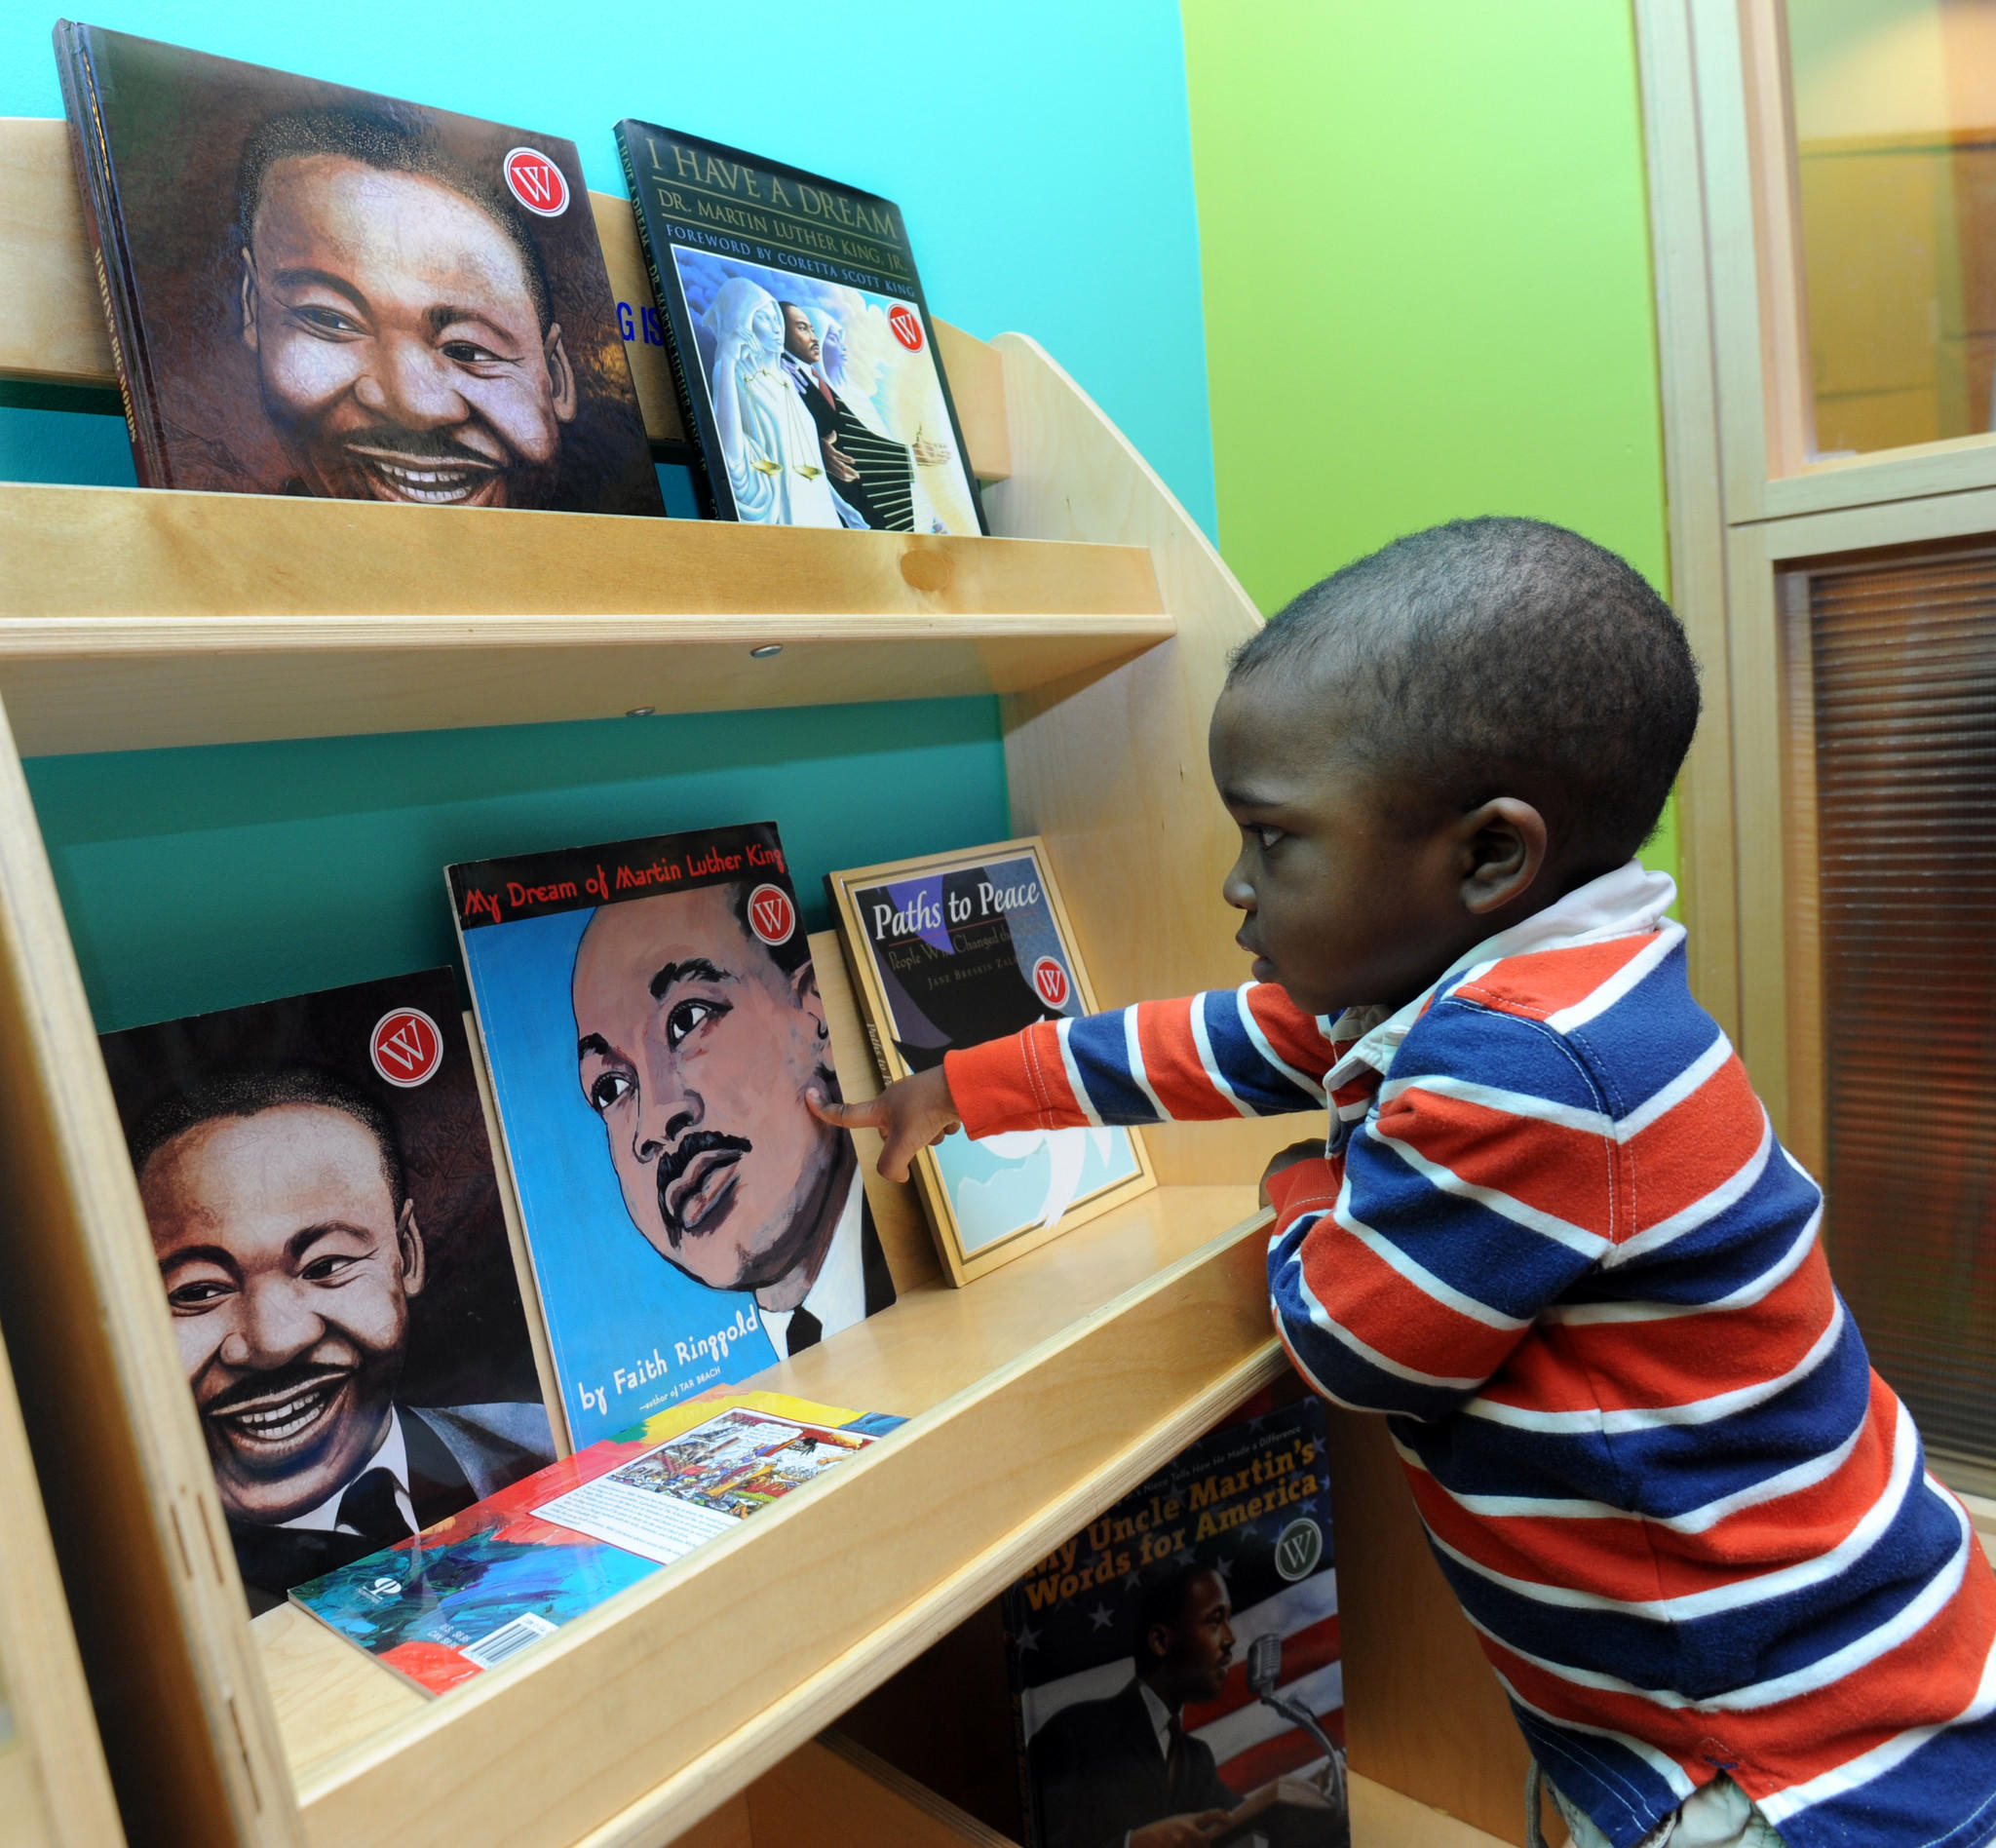 Emanuel Francis, 2, looks at books on Martin Luther King, Jr. He came to the museum with his mother, Lucine Francis from Baltimore. A free Martin Luther King, Jr. family festival was held at the Walters Art Museum which included art activities for children.